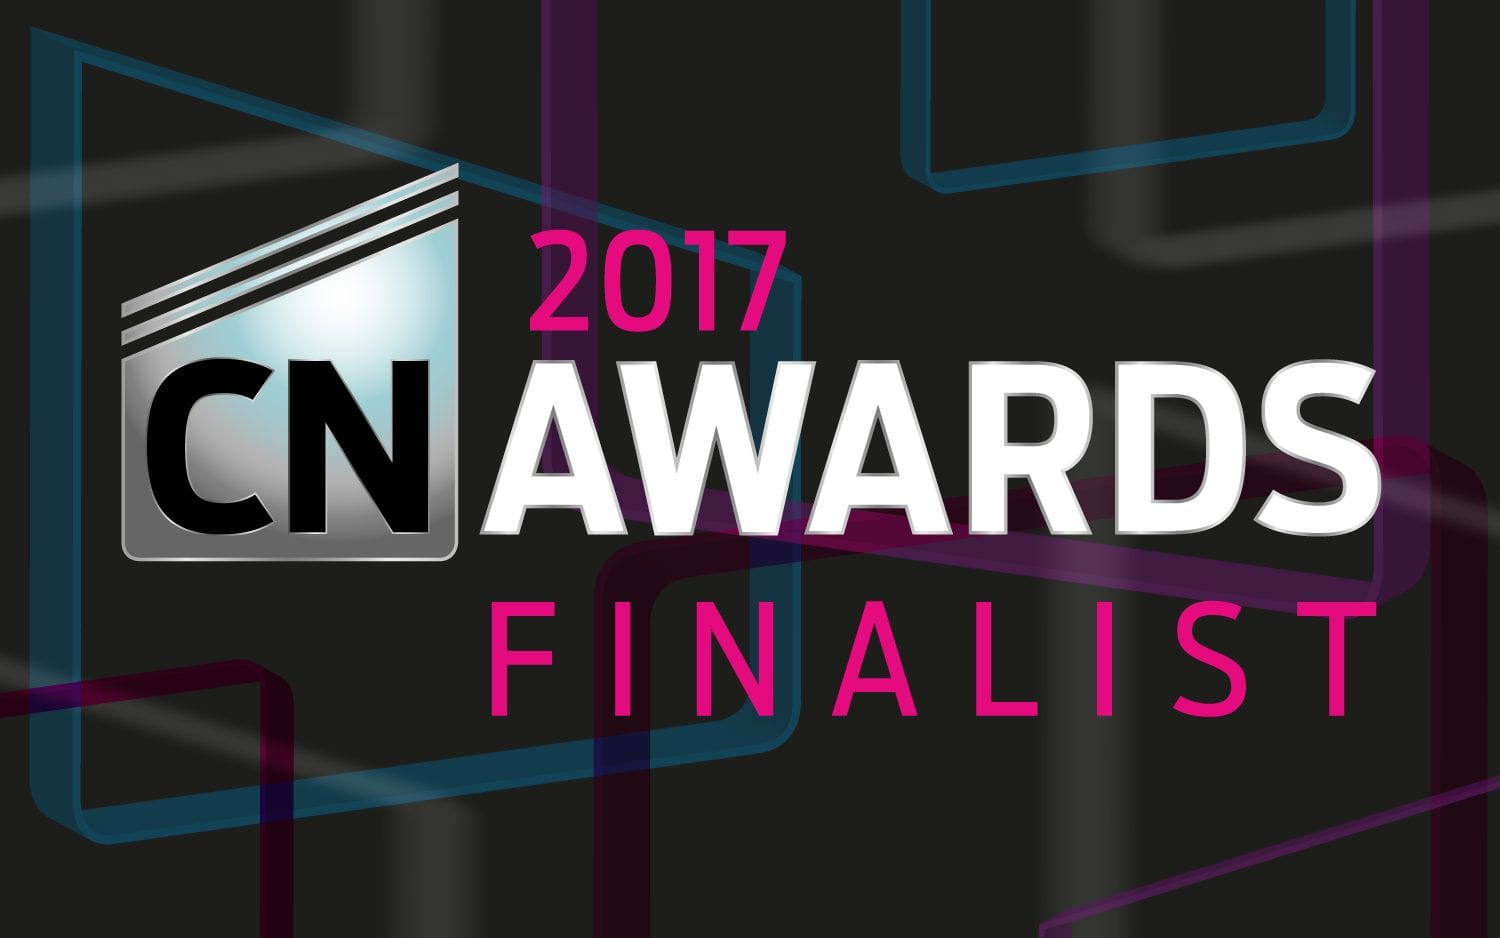 Training Excellence of the Year Award 2017 - FINALIST